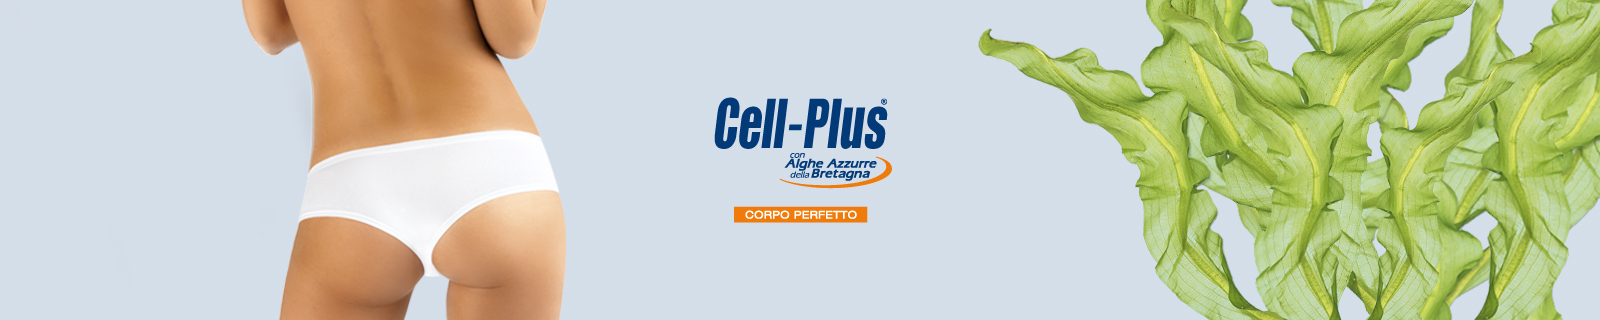 Cell-Plus Corpo Perfetto